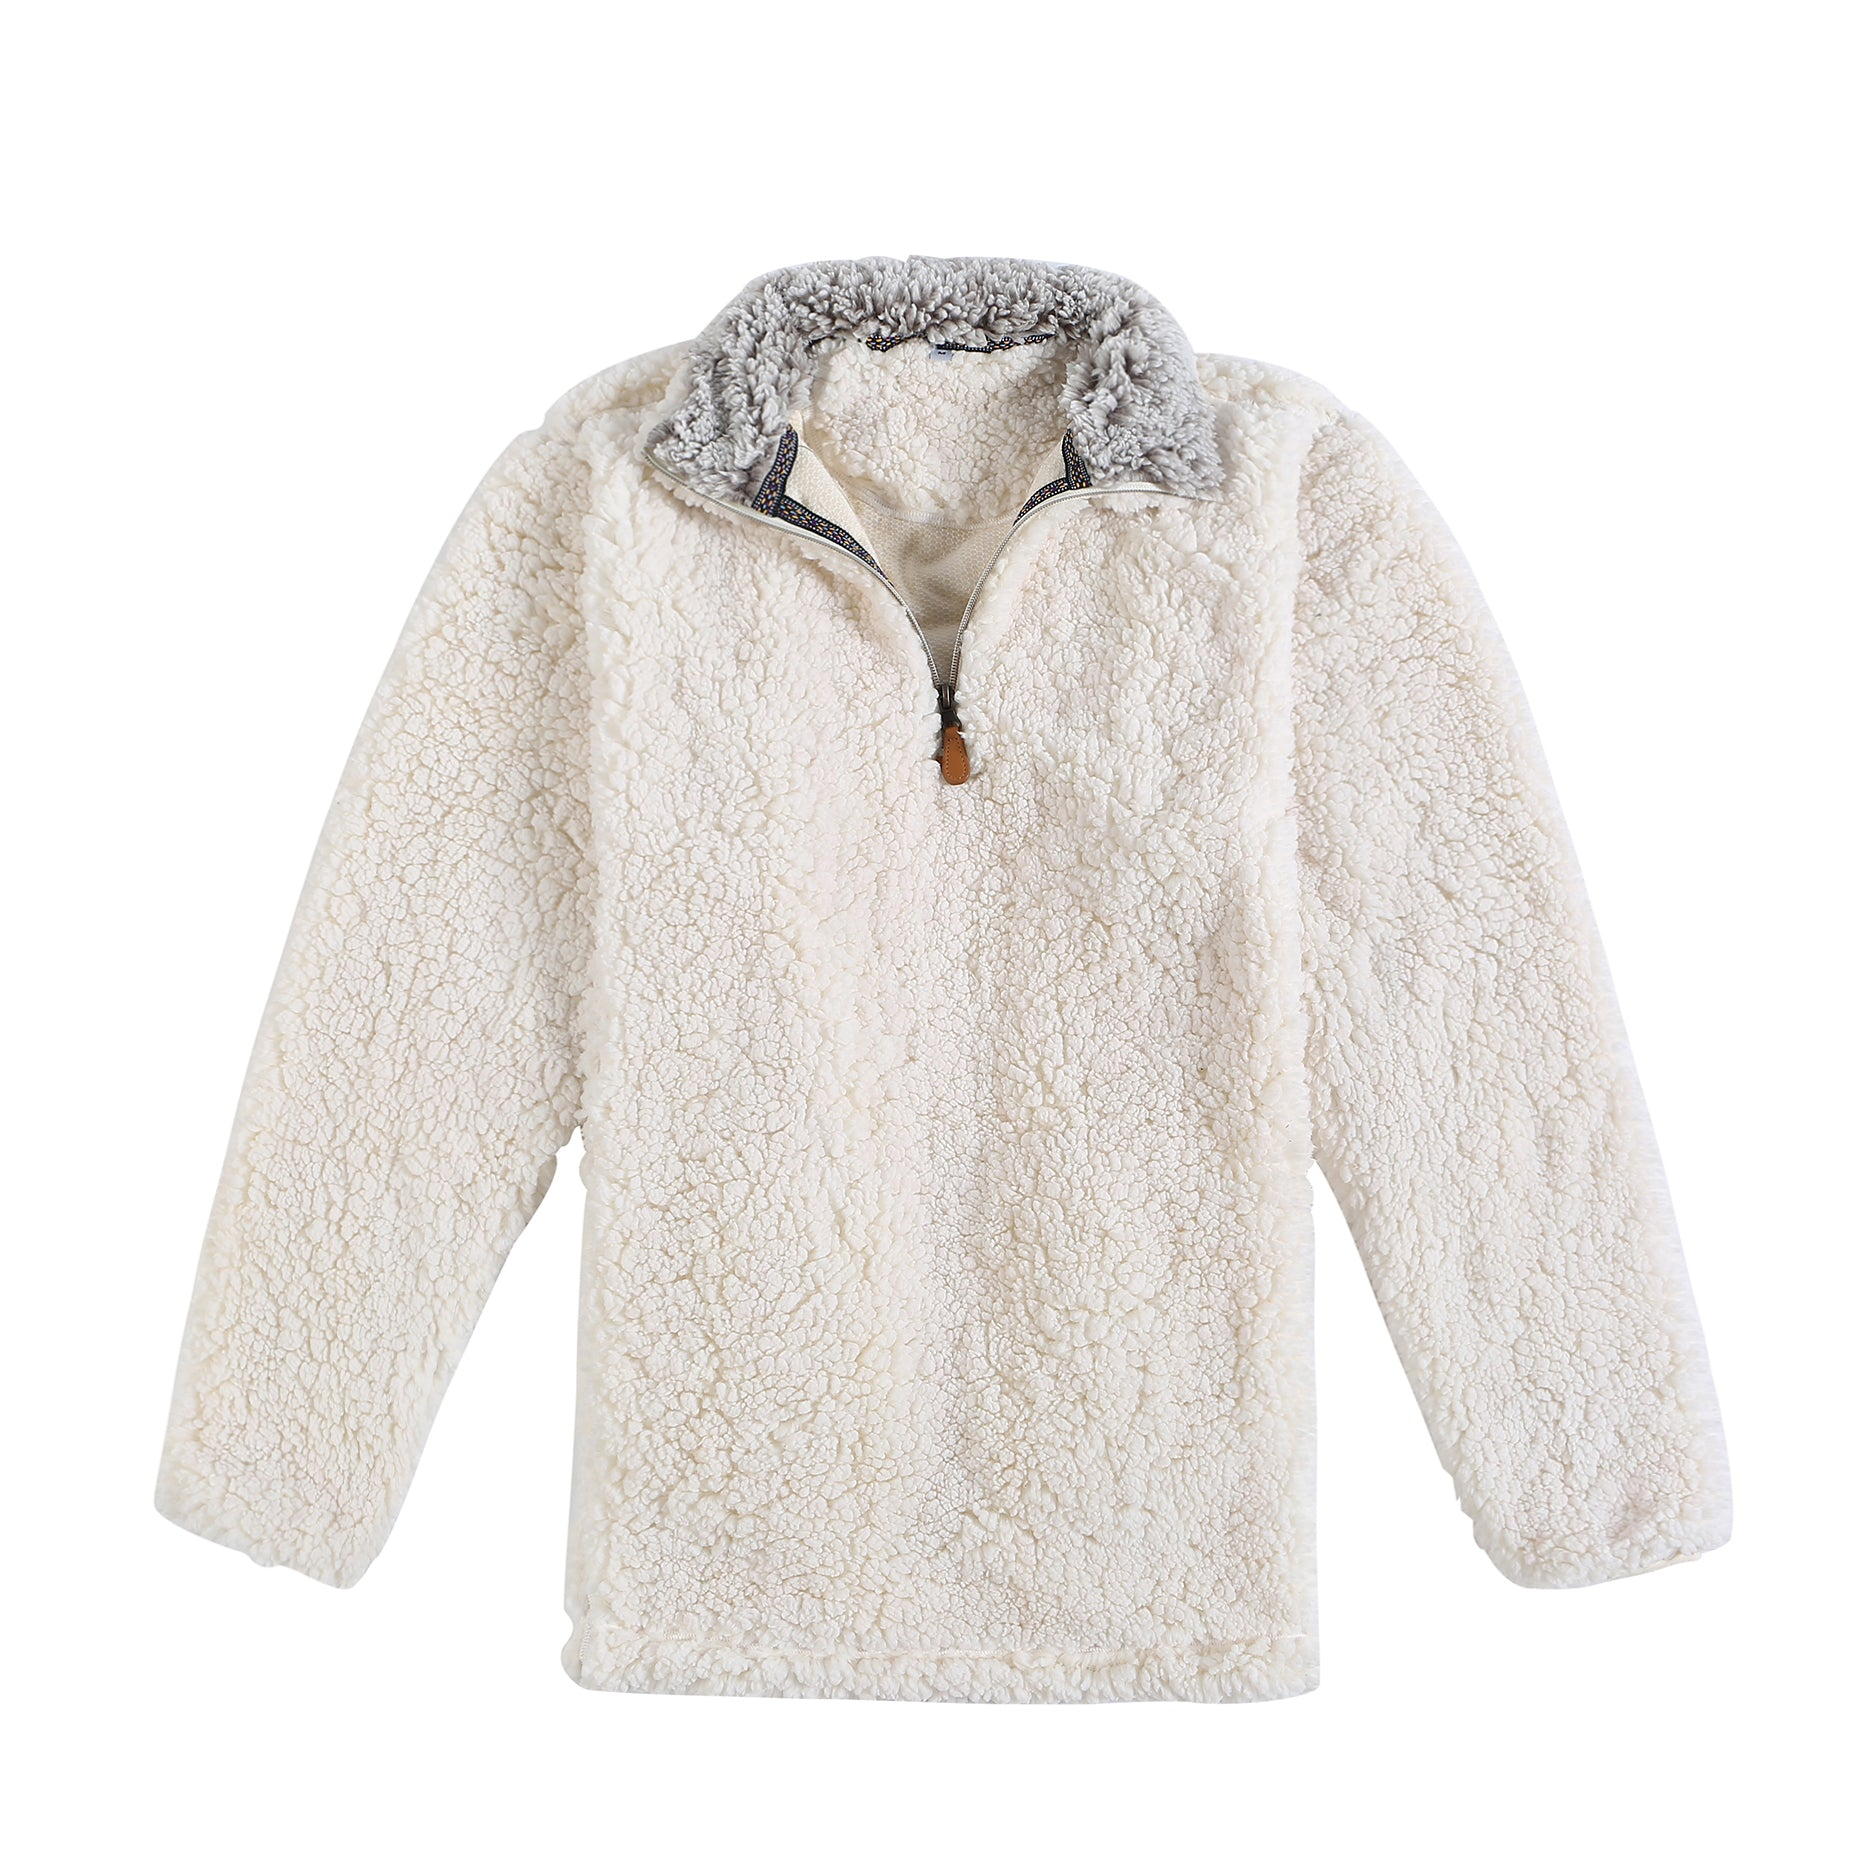 Katydid Wholesale Sherpa Pull-Overs with Pockets 2019